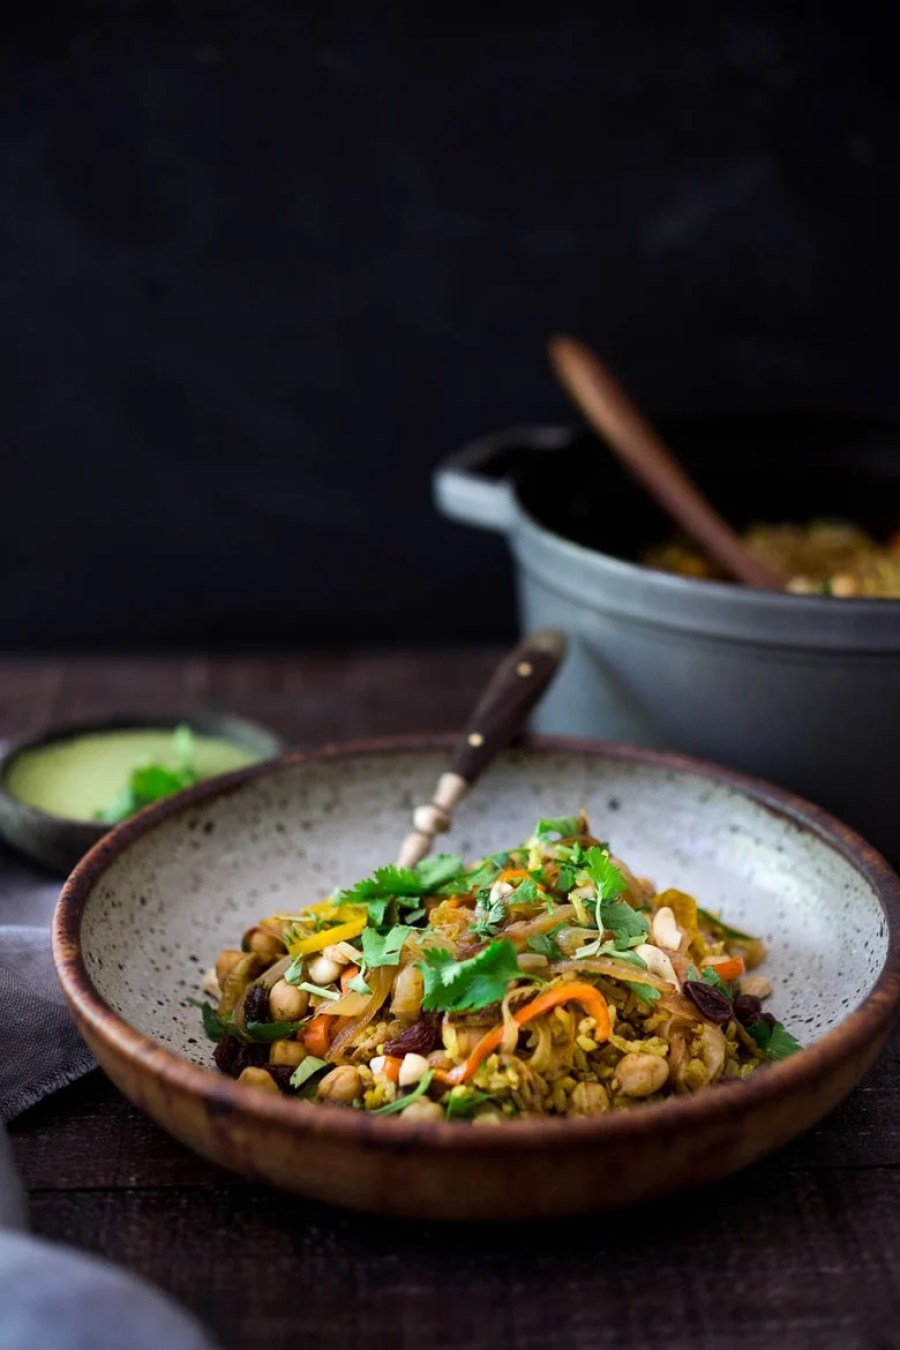 Quick Chickpea Biryani w/ Cilantro Yogurt Sauce. A fragrant rice dish infused went Indian spices - vegan and gluten-free. A quick and easy weeknight meal.   www.feastingathome.com